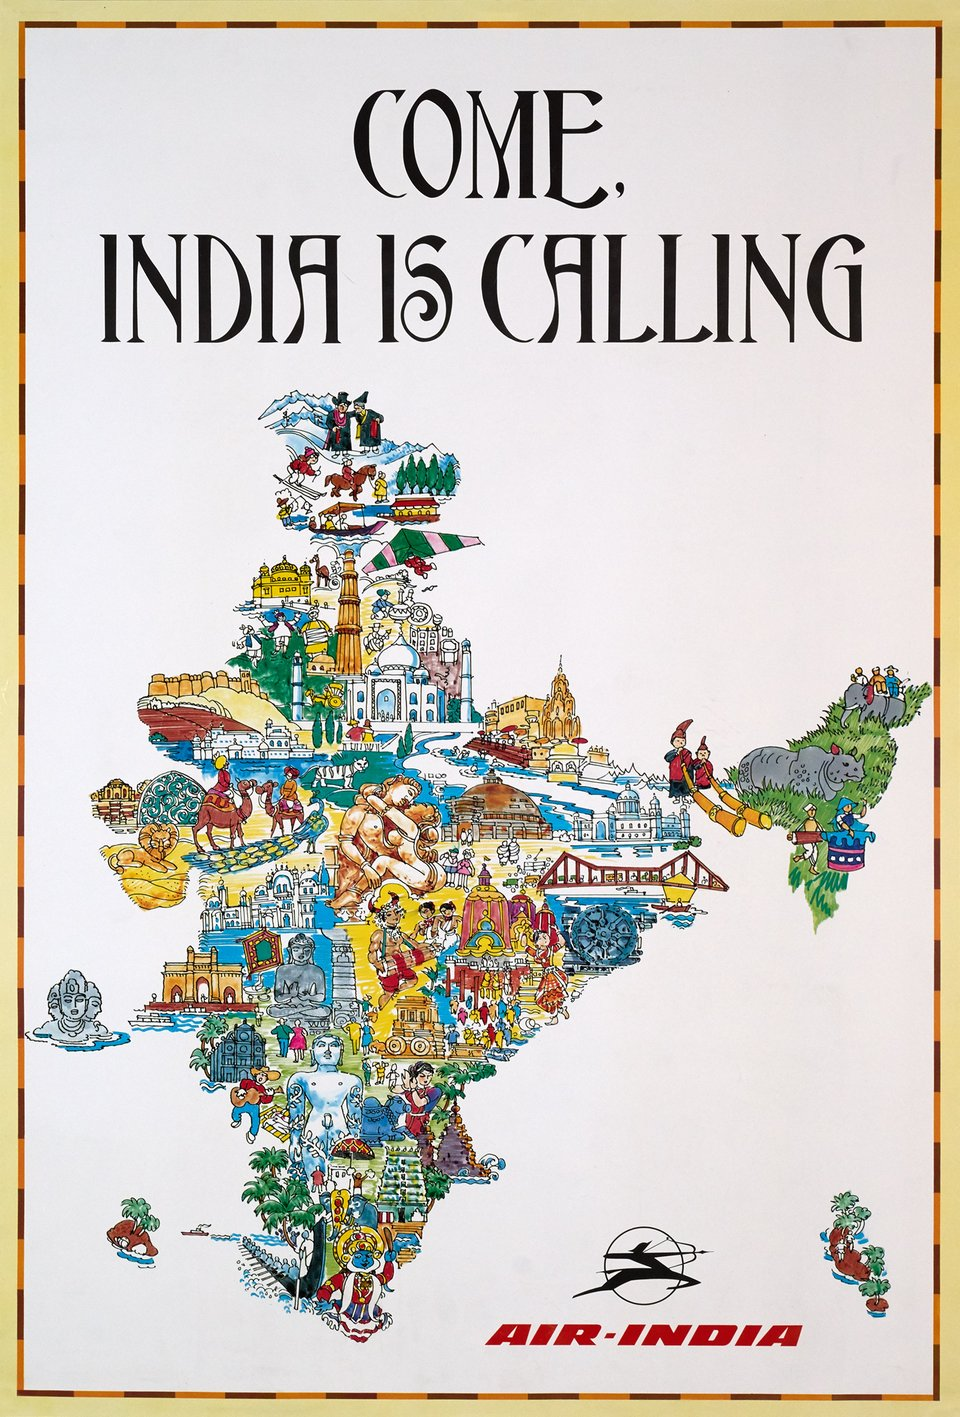 Air-India, Come, India is Calling – Vintage poster –  ANONYME – 1985